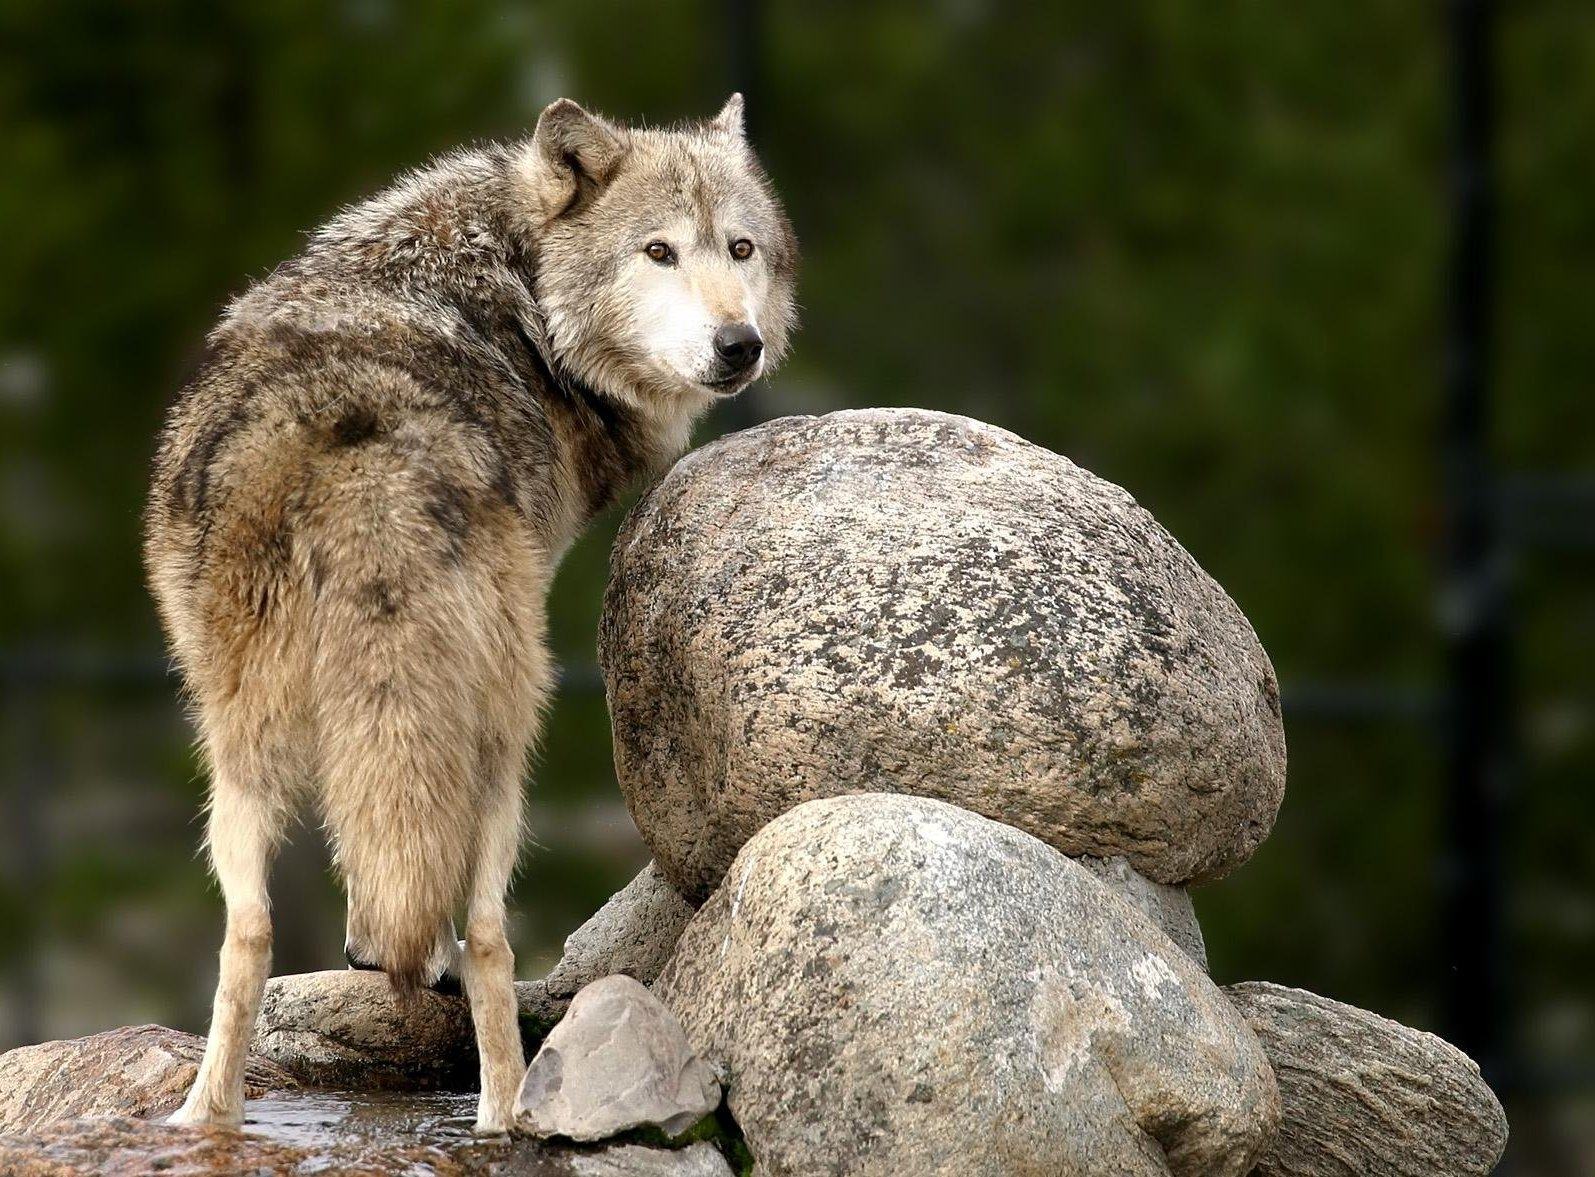 68985 download wallpaper Animals, Stones, Predator, Sight, Opinion screensavers and pictures for free